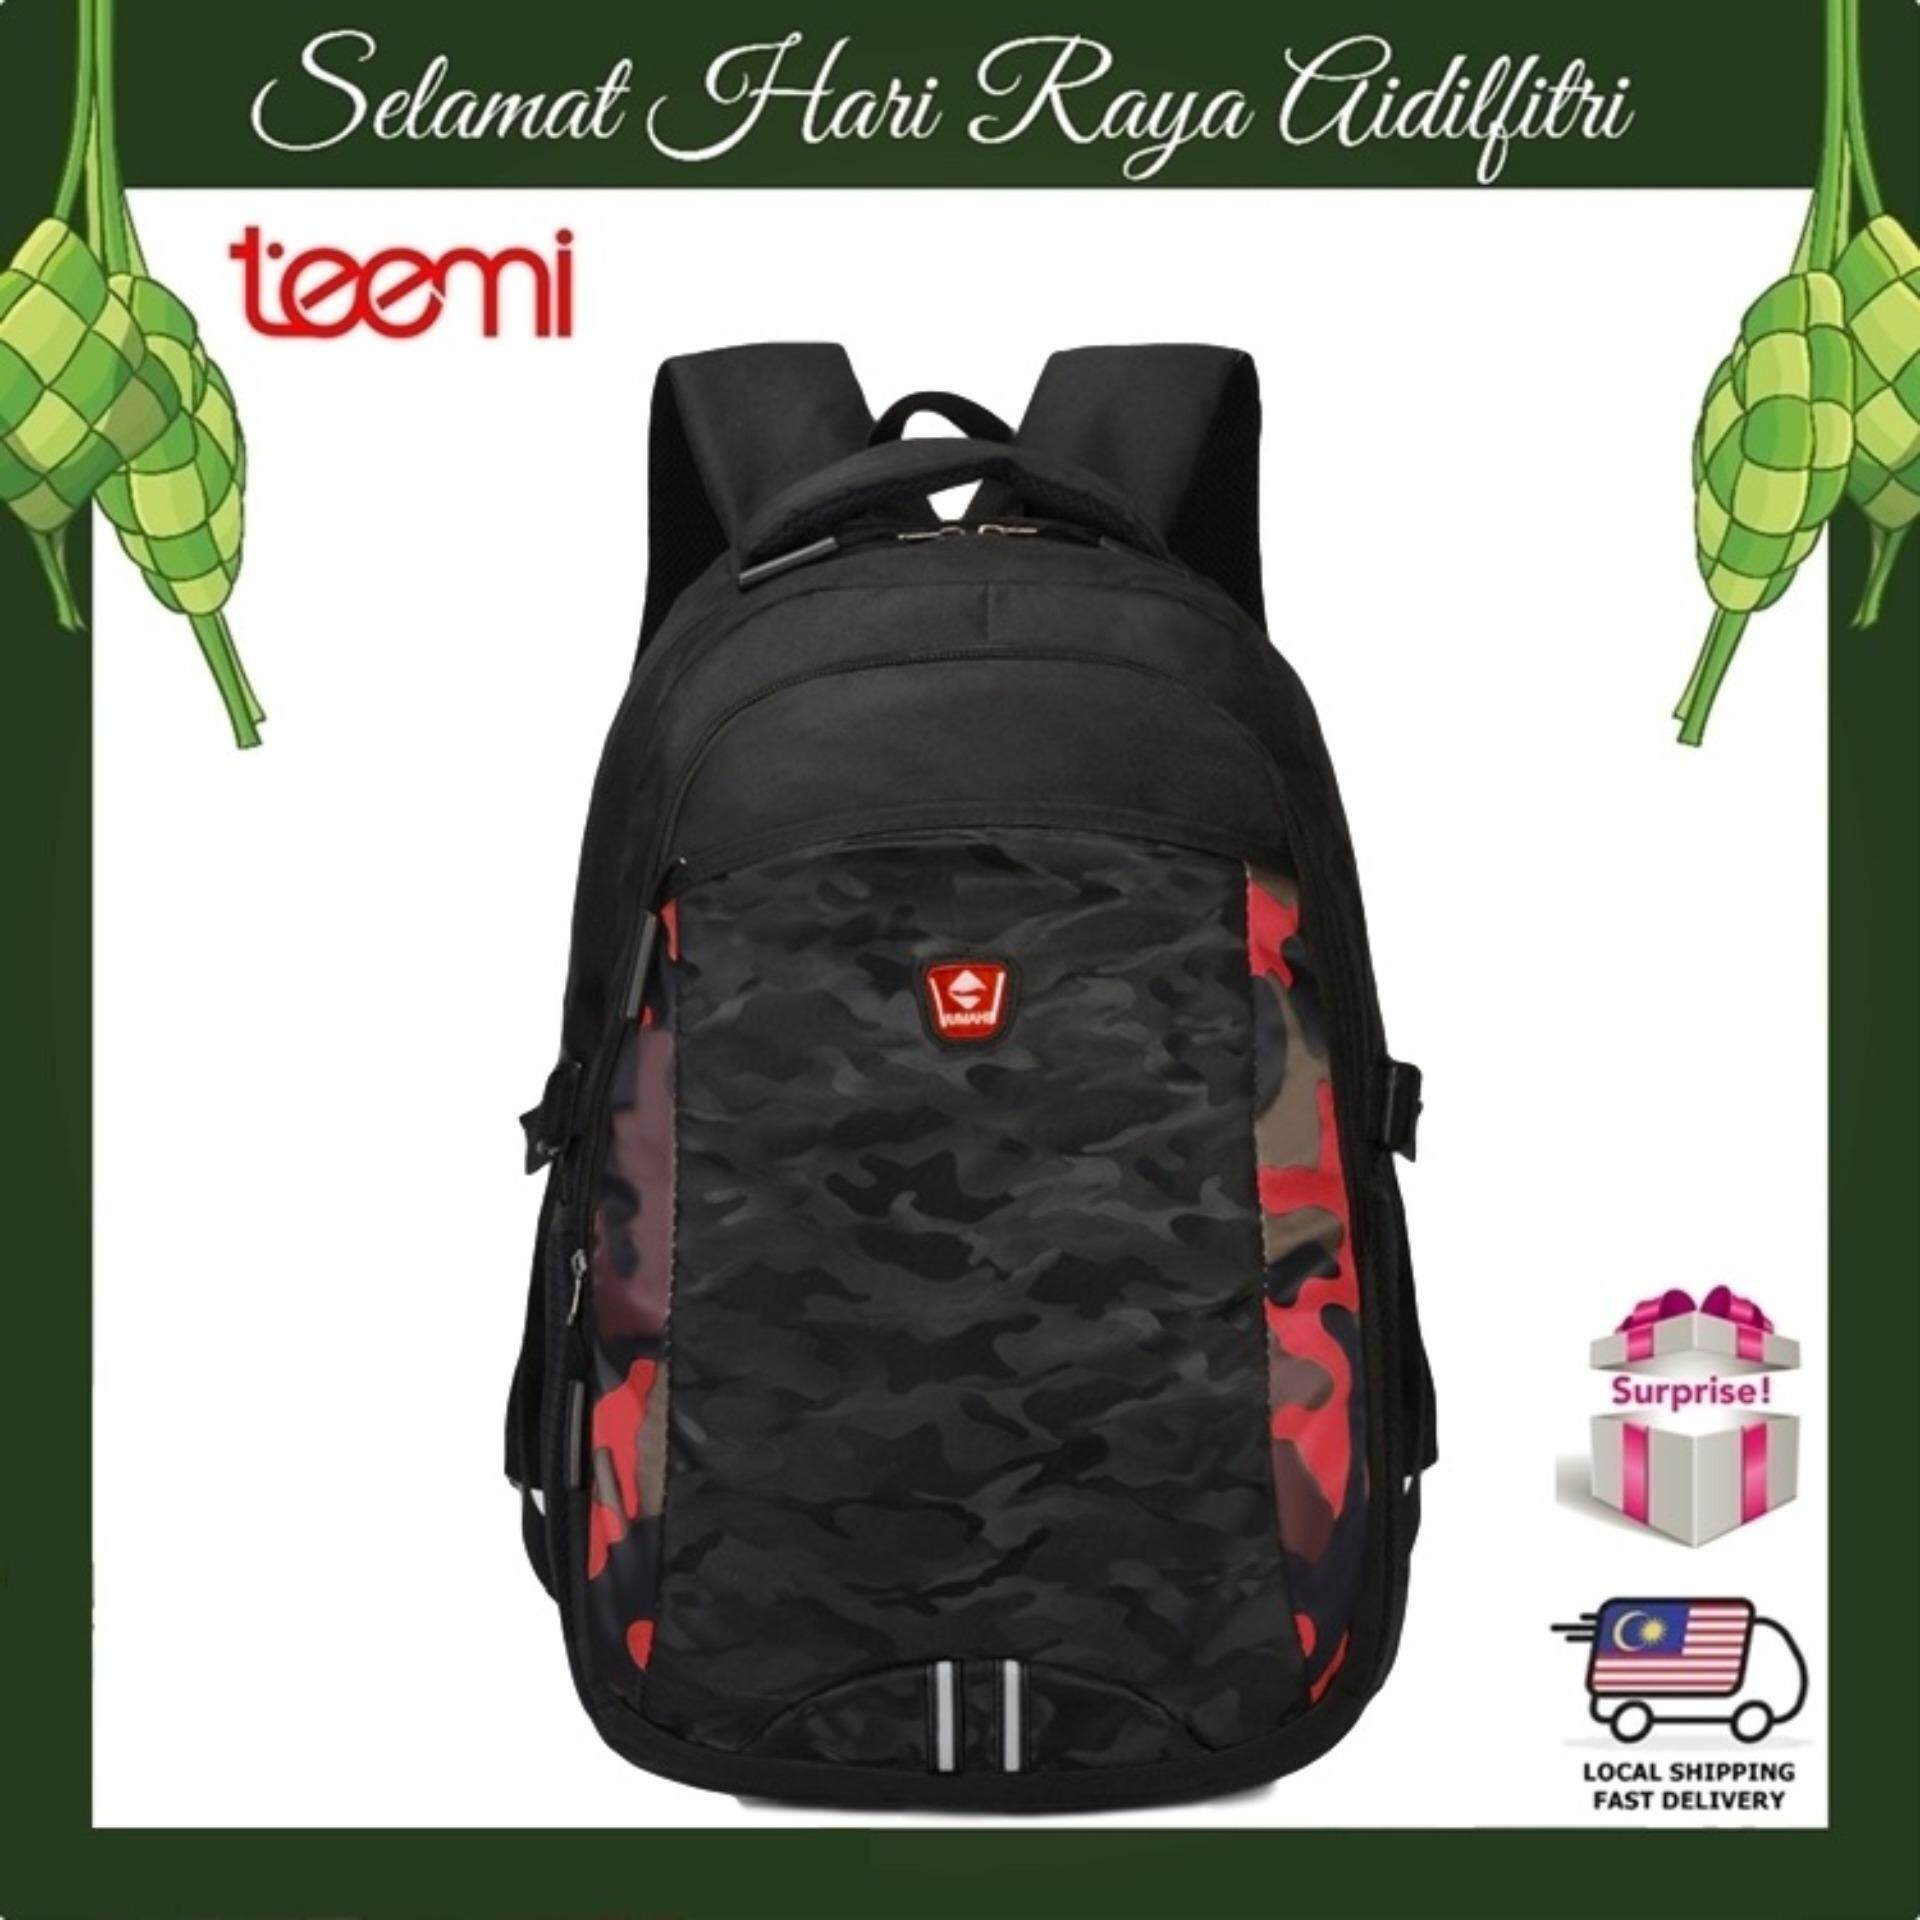 TEEMI Unisex Army Camouflage Forest Stripe Printing Nylon Laptop Backpack Casual Teen School College Travel Business Bag - Red